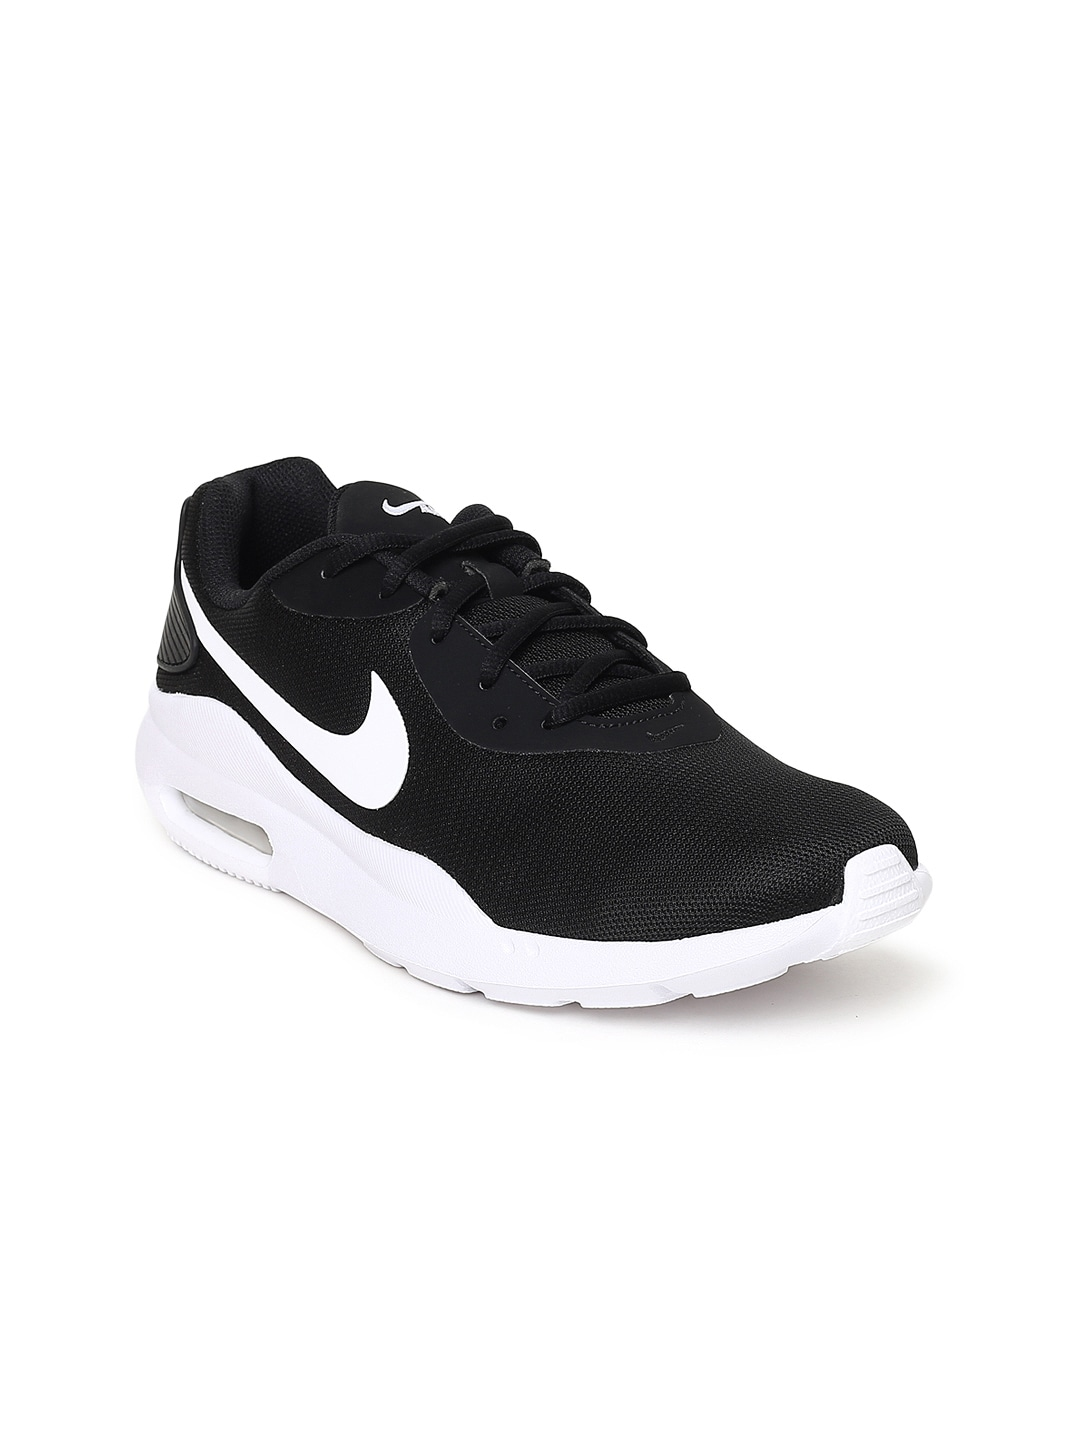 590a4c7d599c Women s Nike Shoes - Buy Nike Shoes for Women Online in India